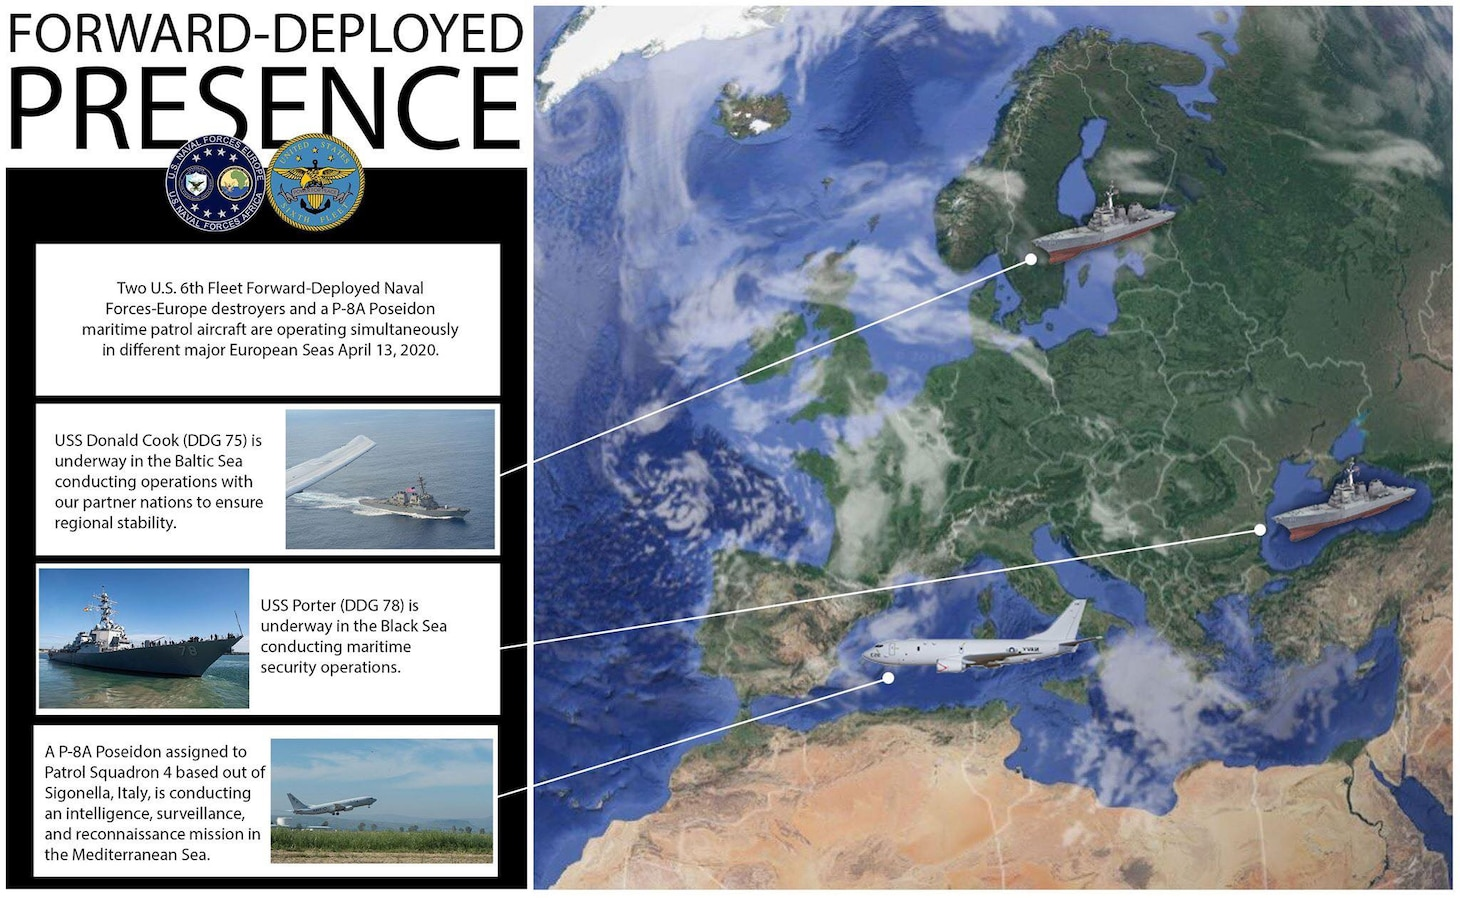 Two U.S. 6th Fleet Forward-Deployed Naval Forces-Europe destroyers and a P-8A Poseidon maritime patrol aircraft are operating simultaneously in different major European Seas, April 13, 2020.